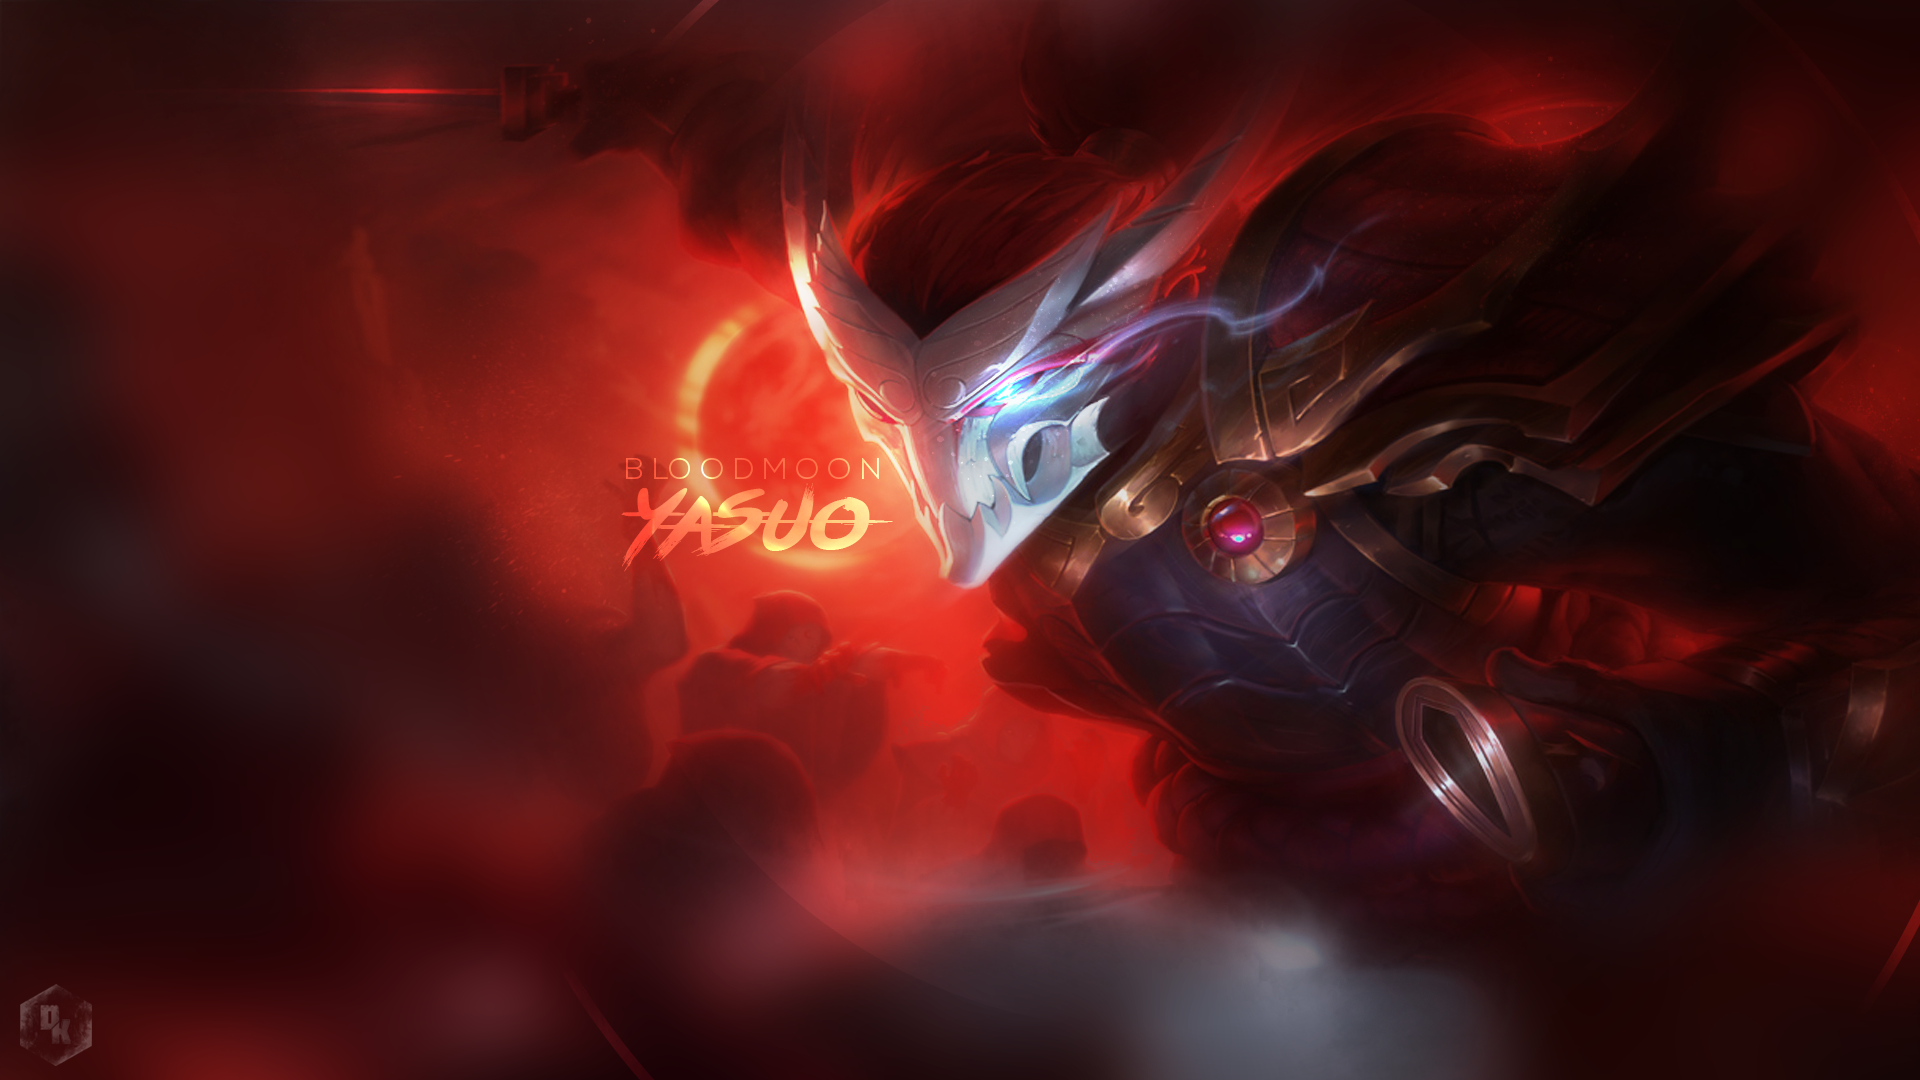 50 Blood Moon Yasuo Wallpaper On Wallpapersafari